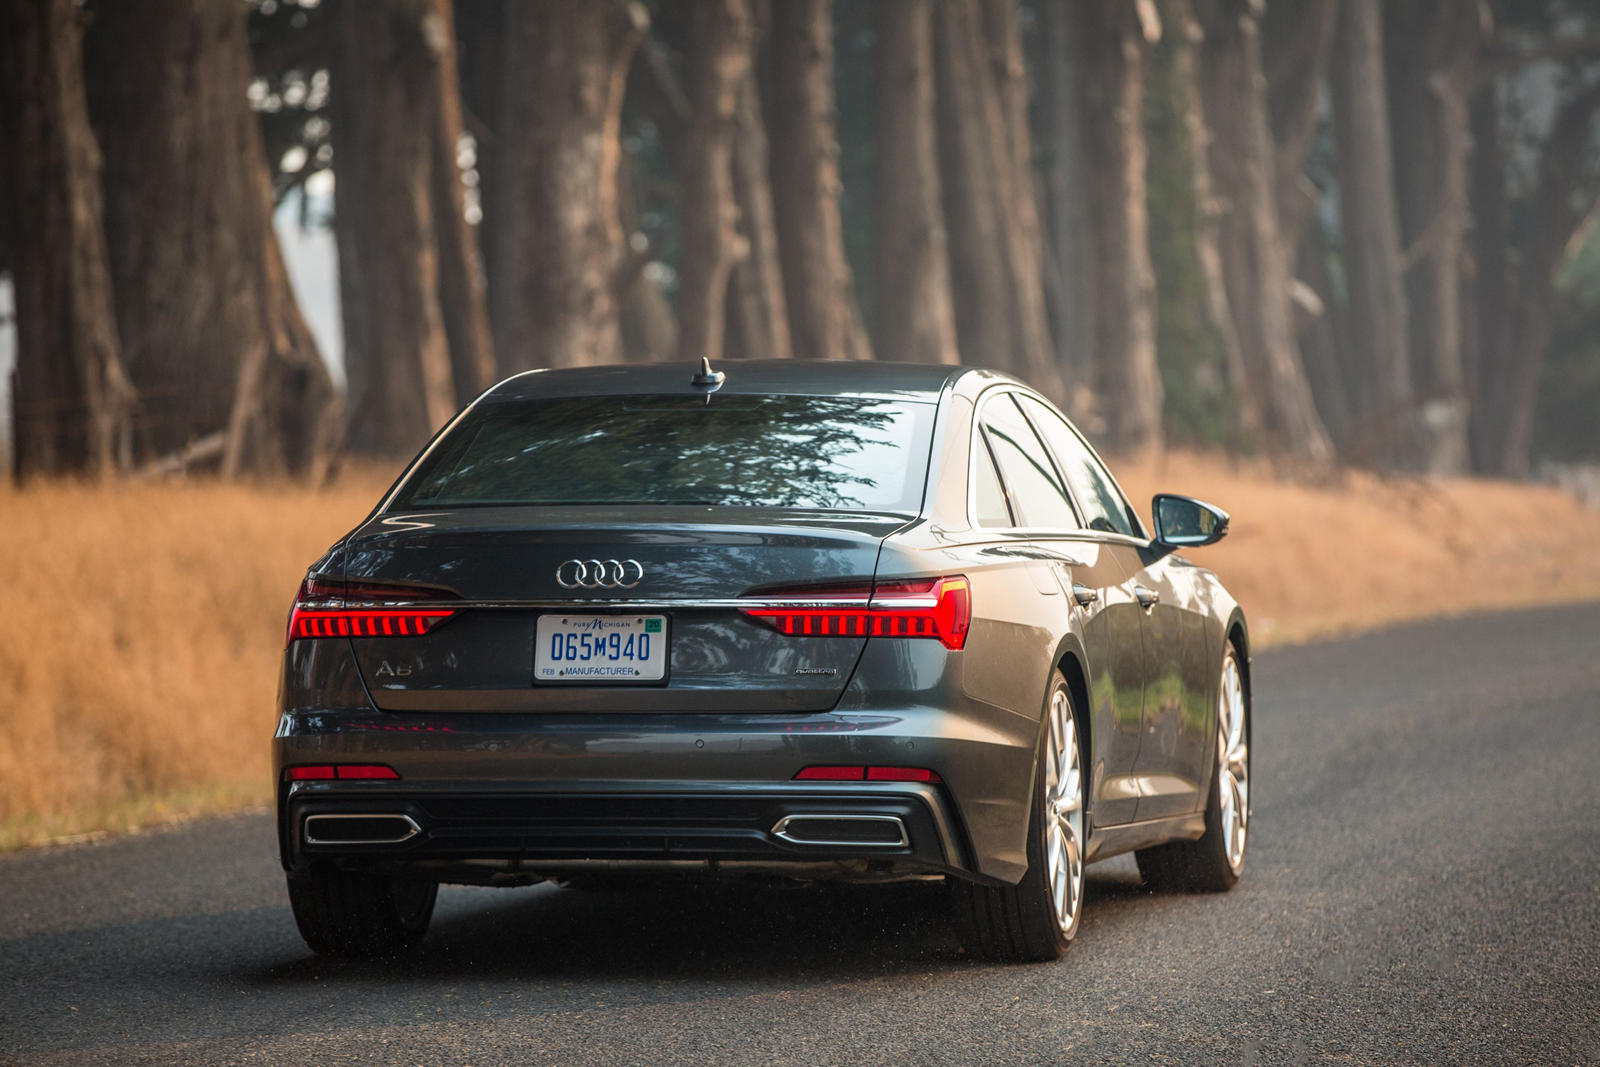 LED Taillights of the Audi A6